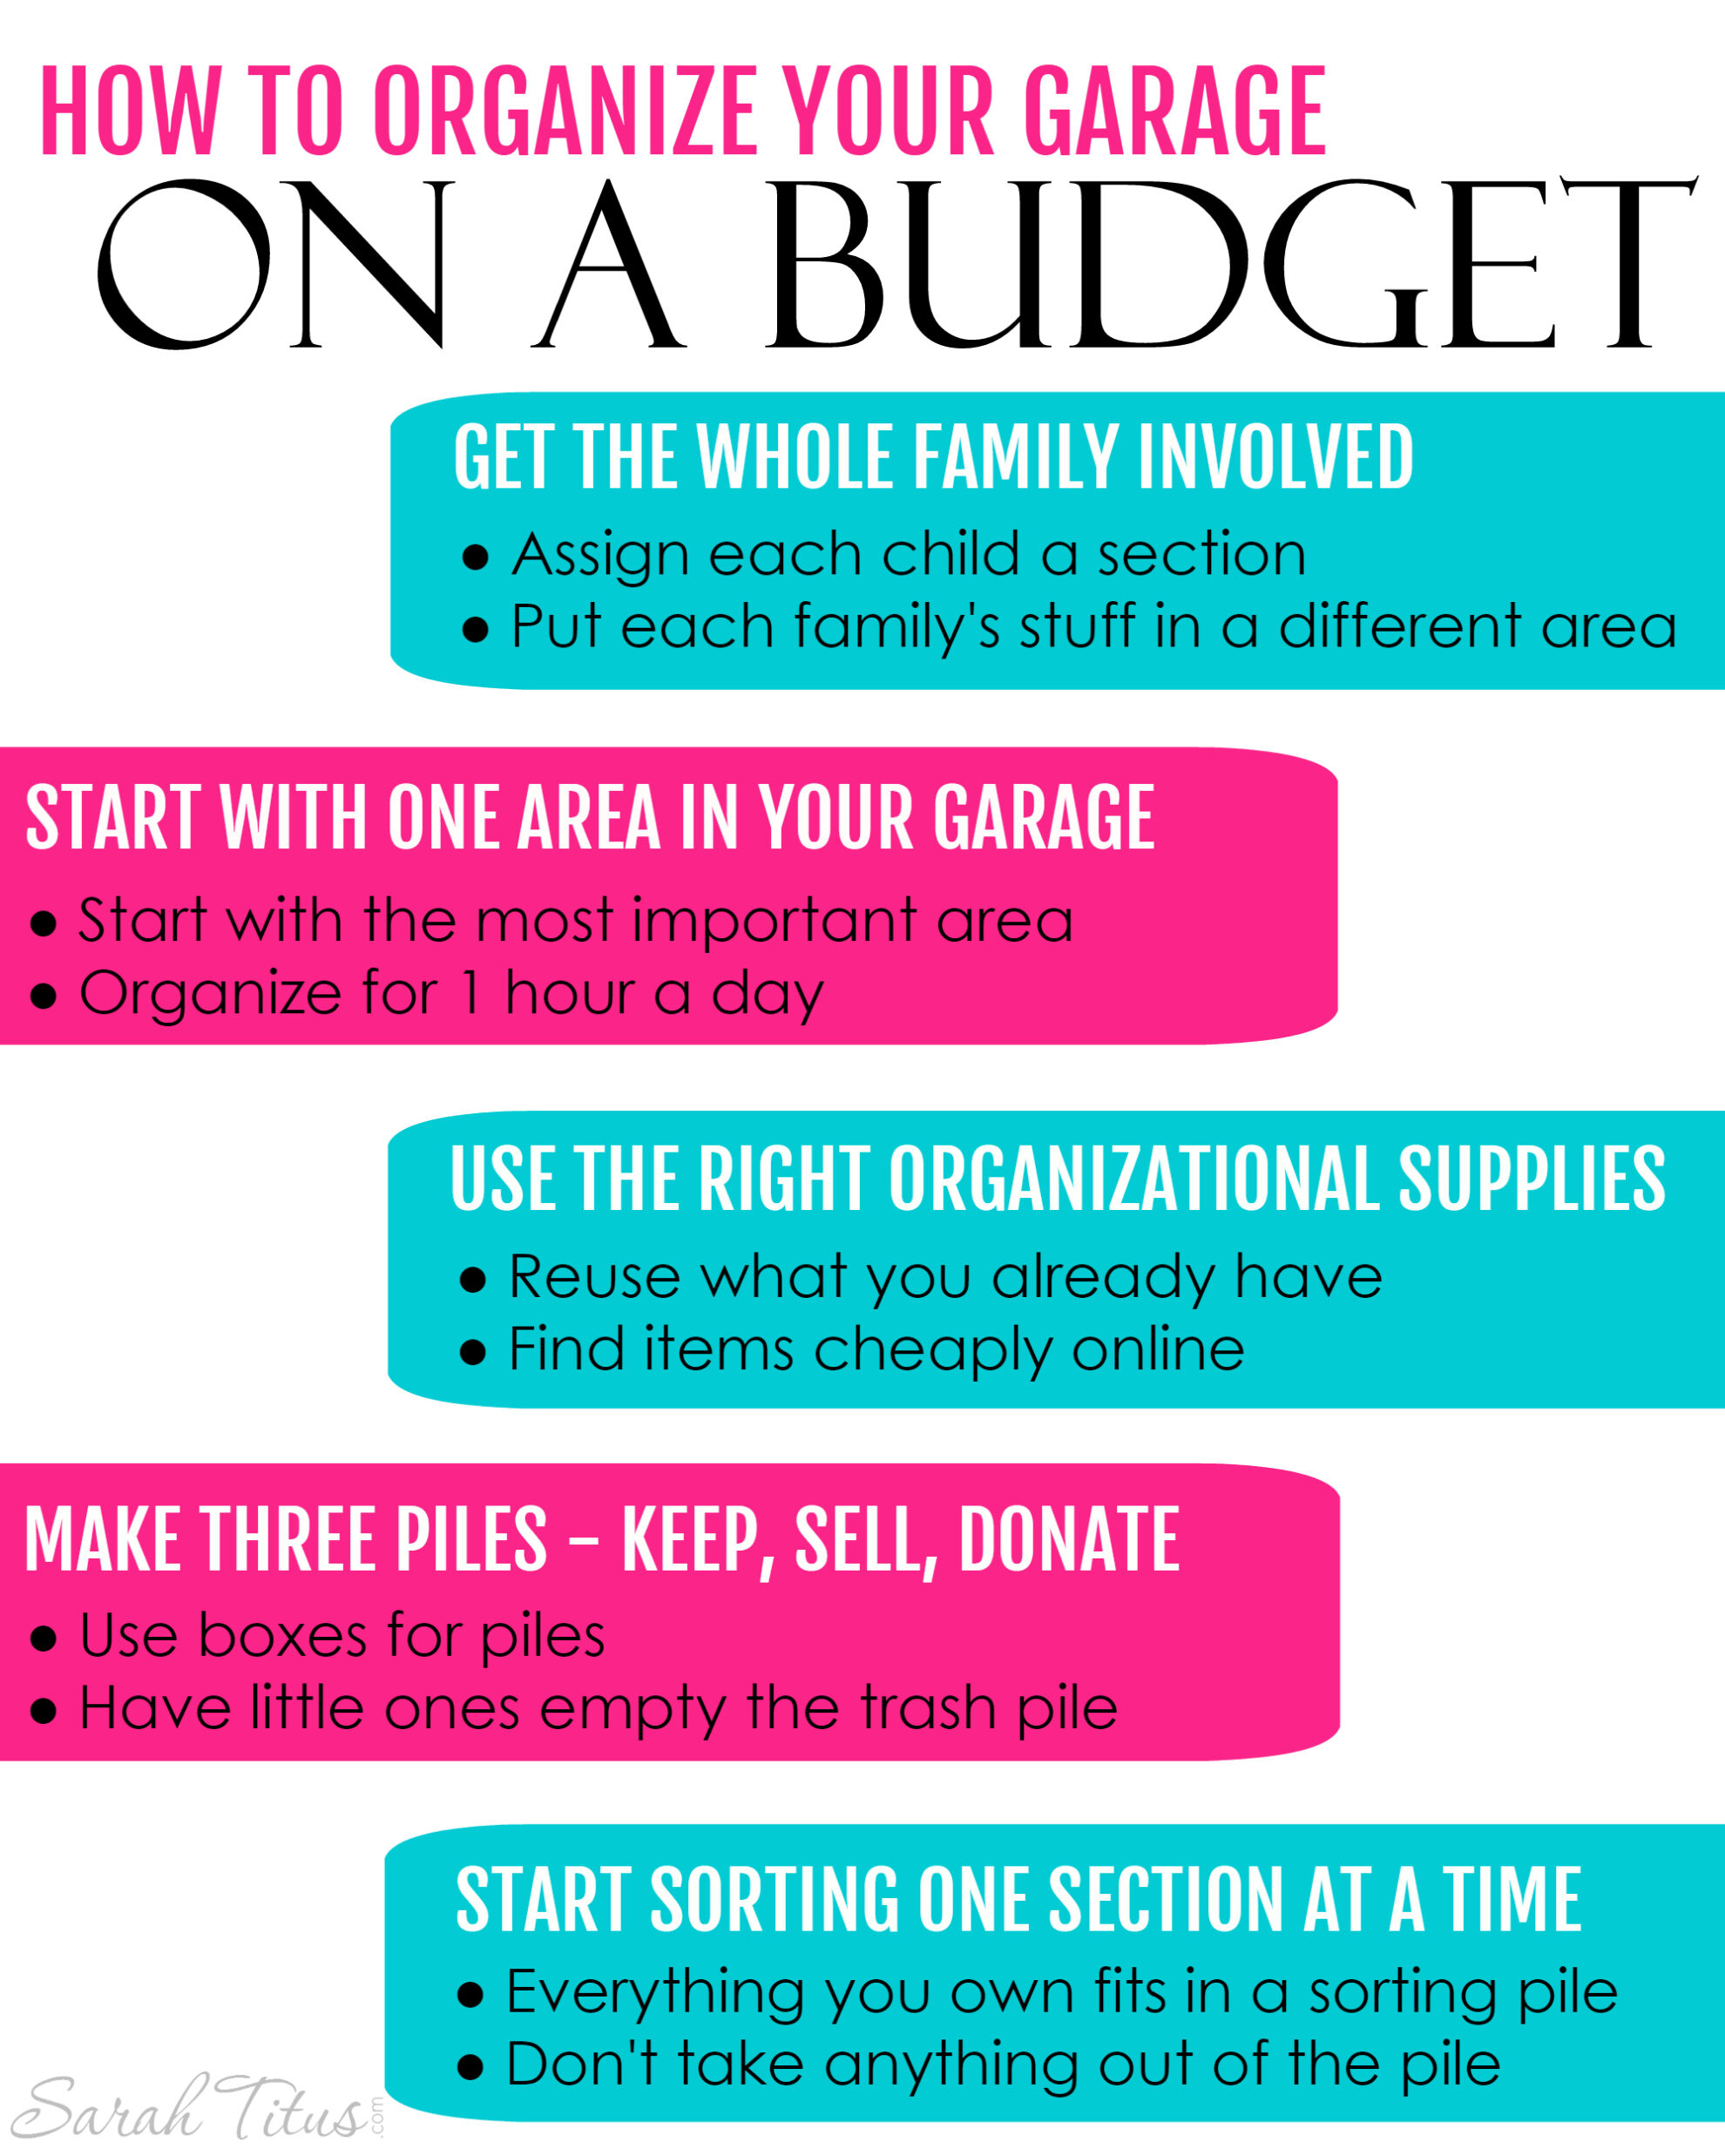 The garage is one of those places in our homes where it can easily become a catch-all for just about everything. This free printable will help show you how to organize your garage on a budget!